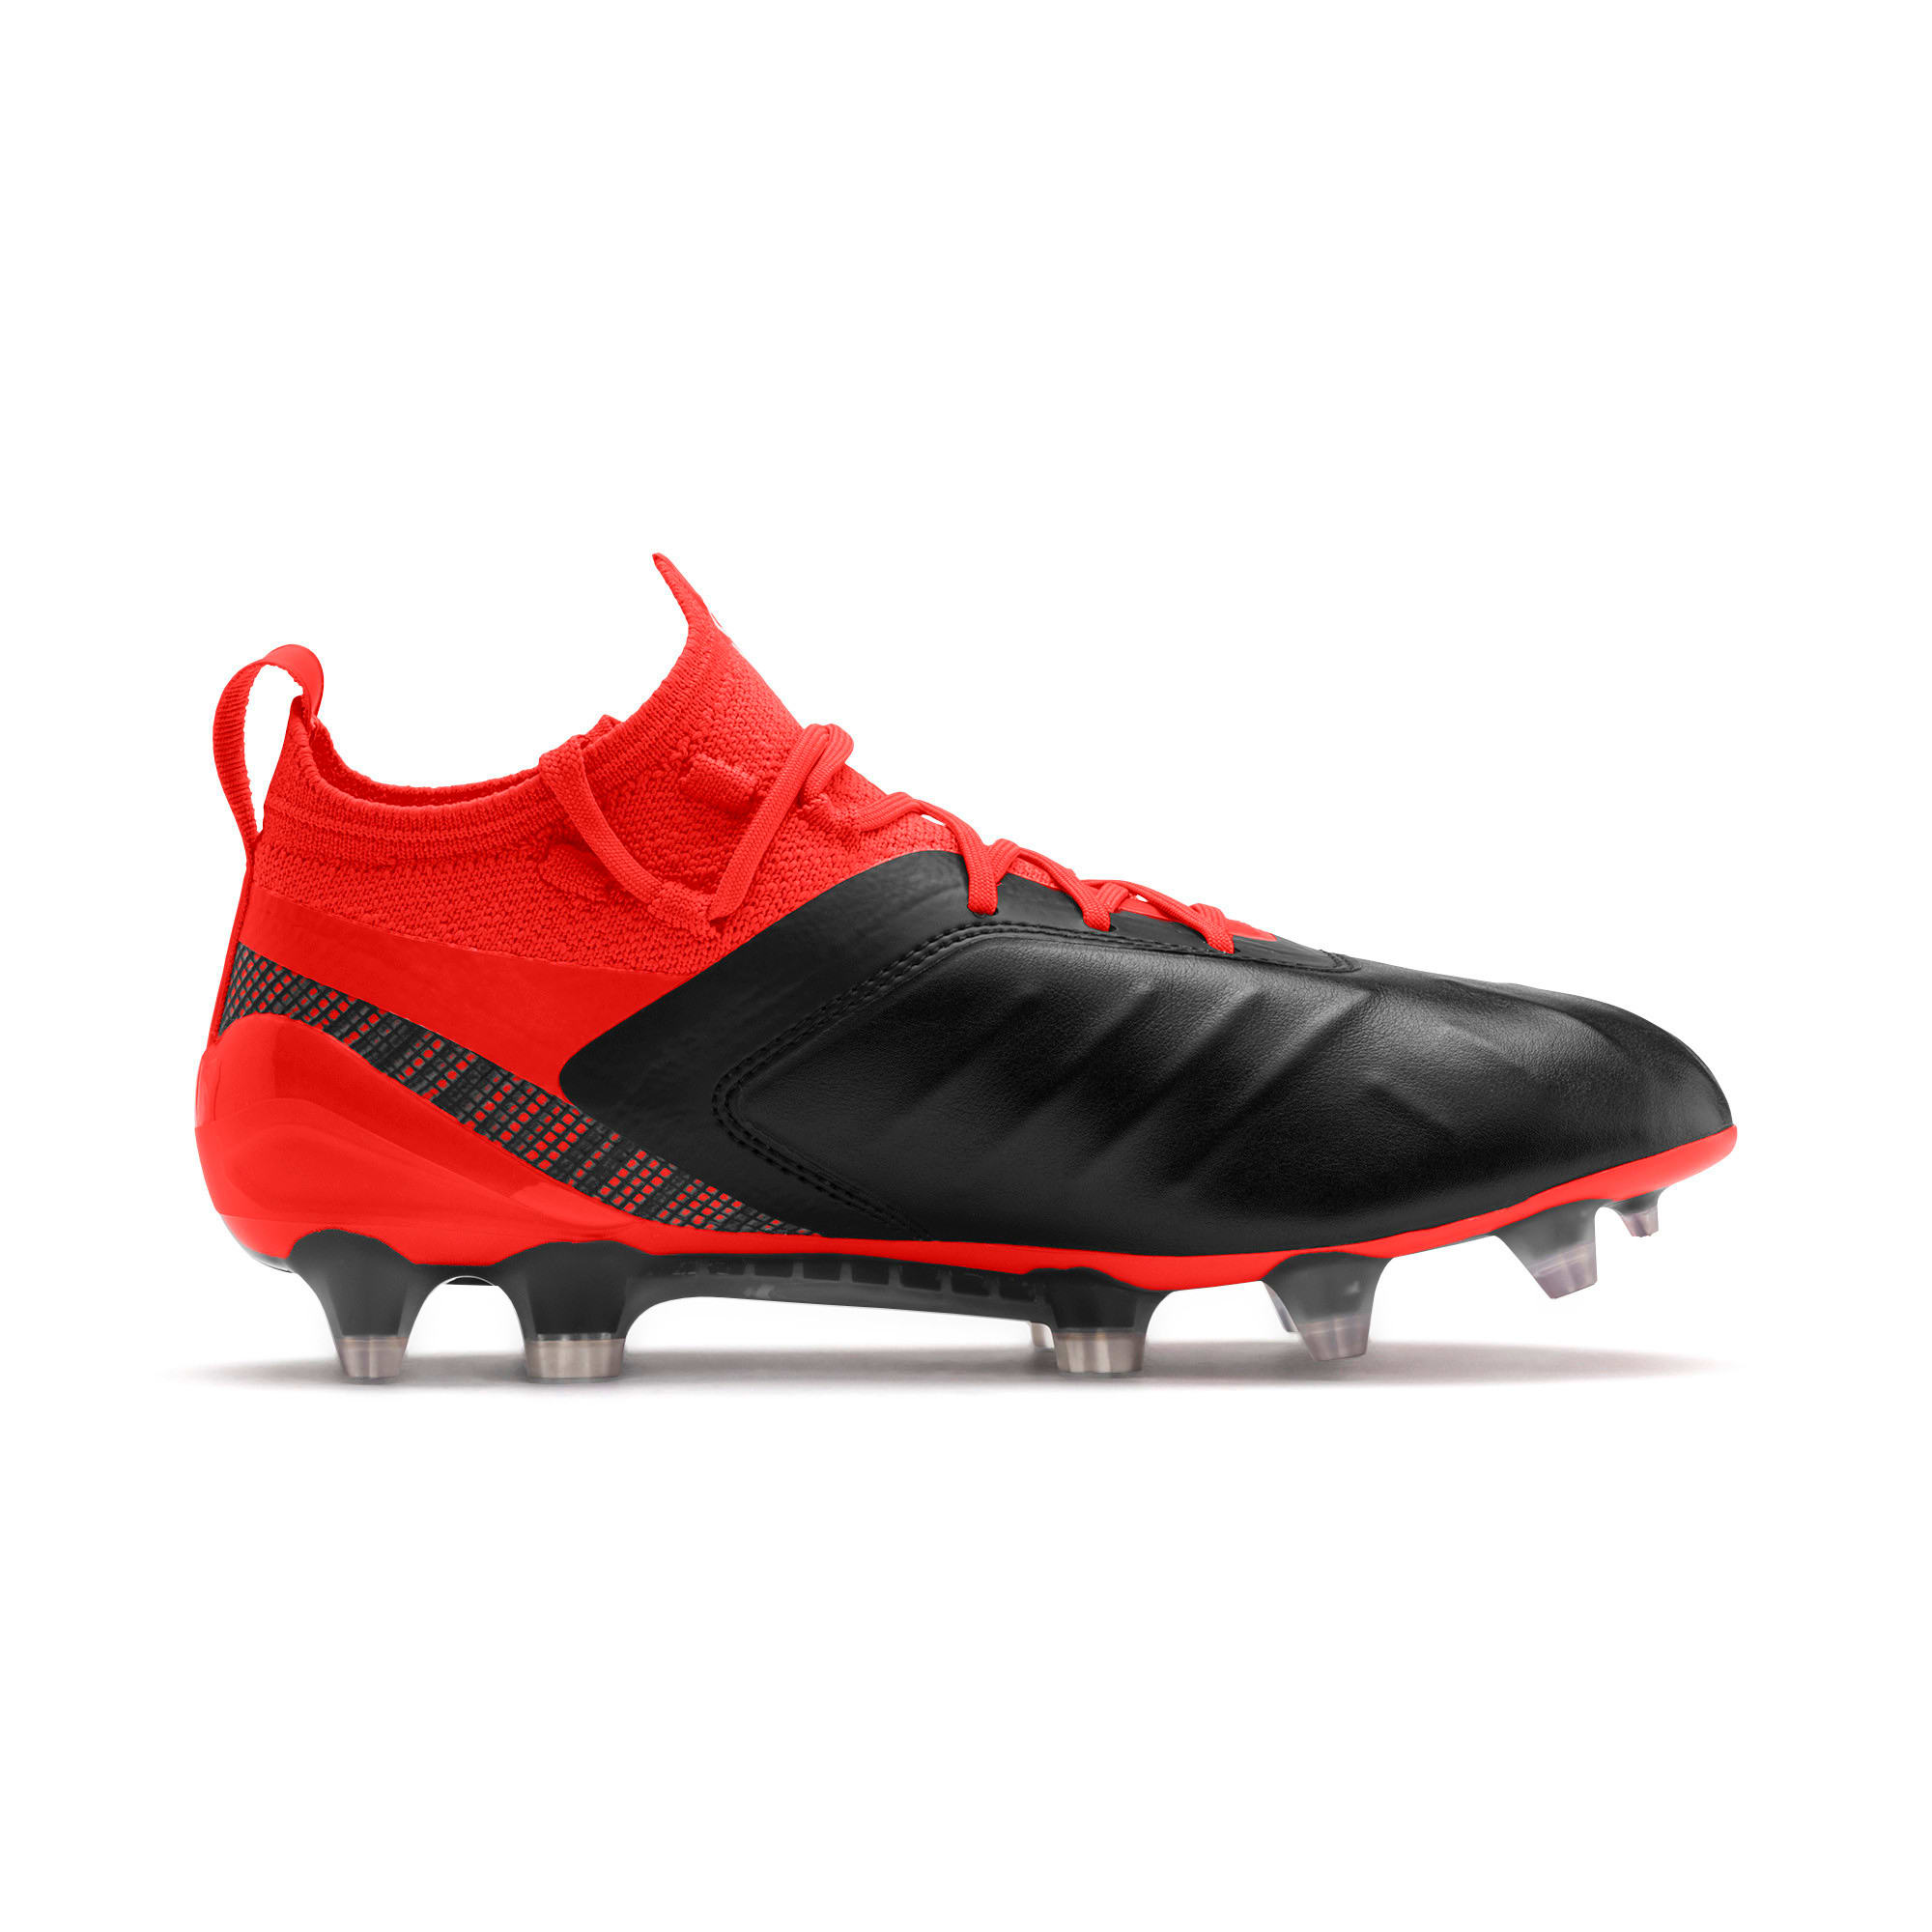 Thumbnail 5 of PUMA ONE 5.1 FG/AG Soccer Cleats JR, Black-Nrgy Red-Aged Silver, medium